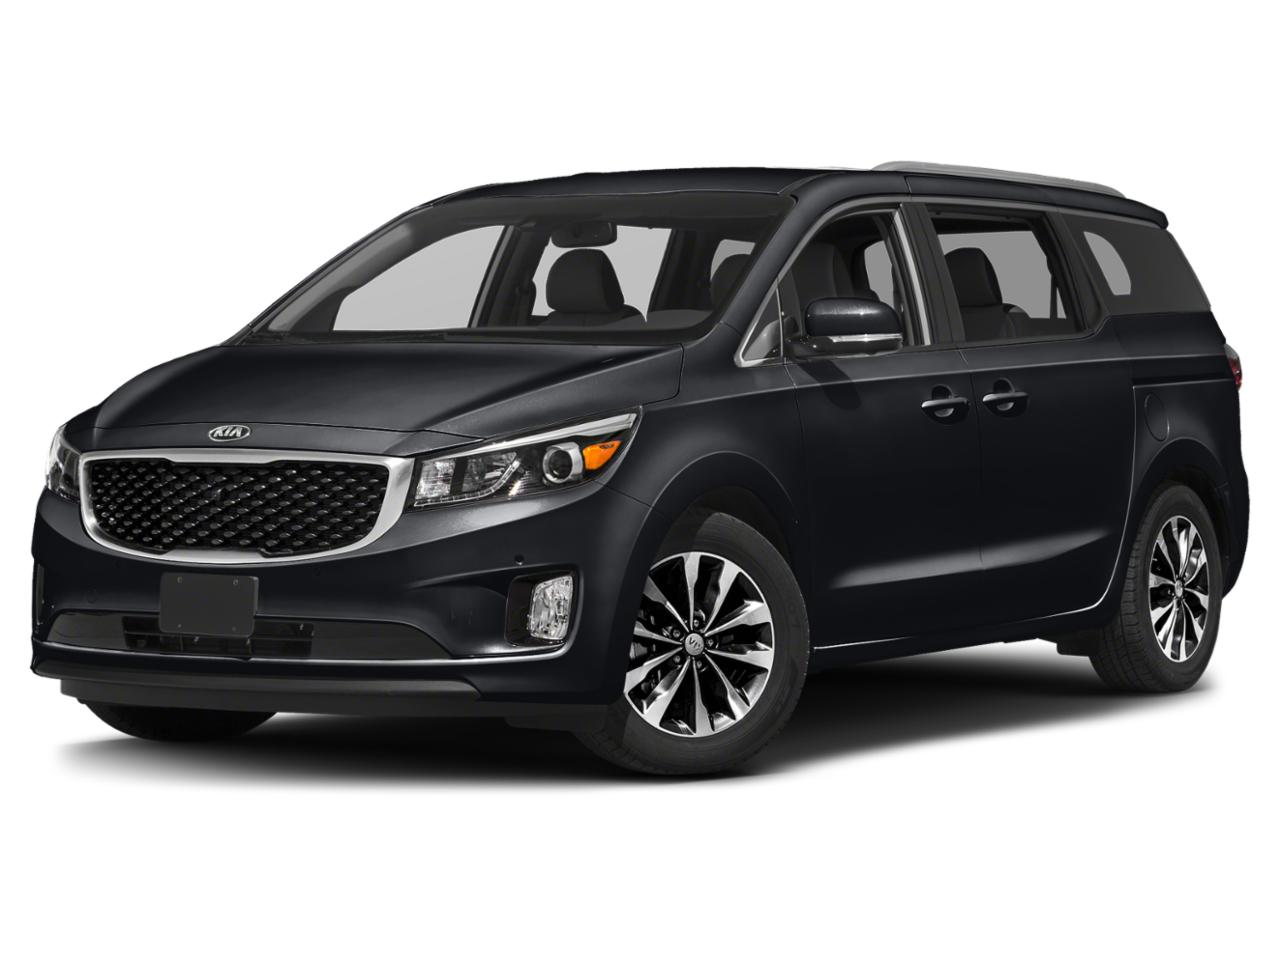 2015 Kia Sedona Vehicle Photo in Portland, OR 97225